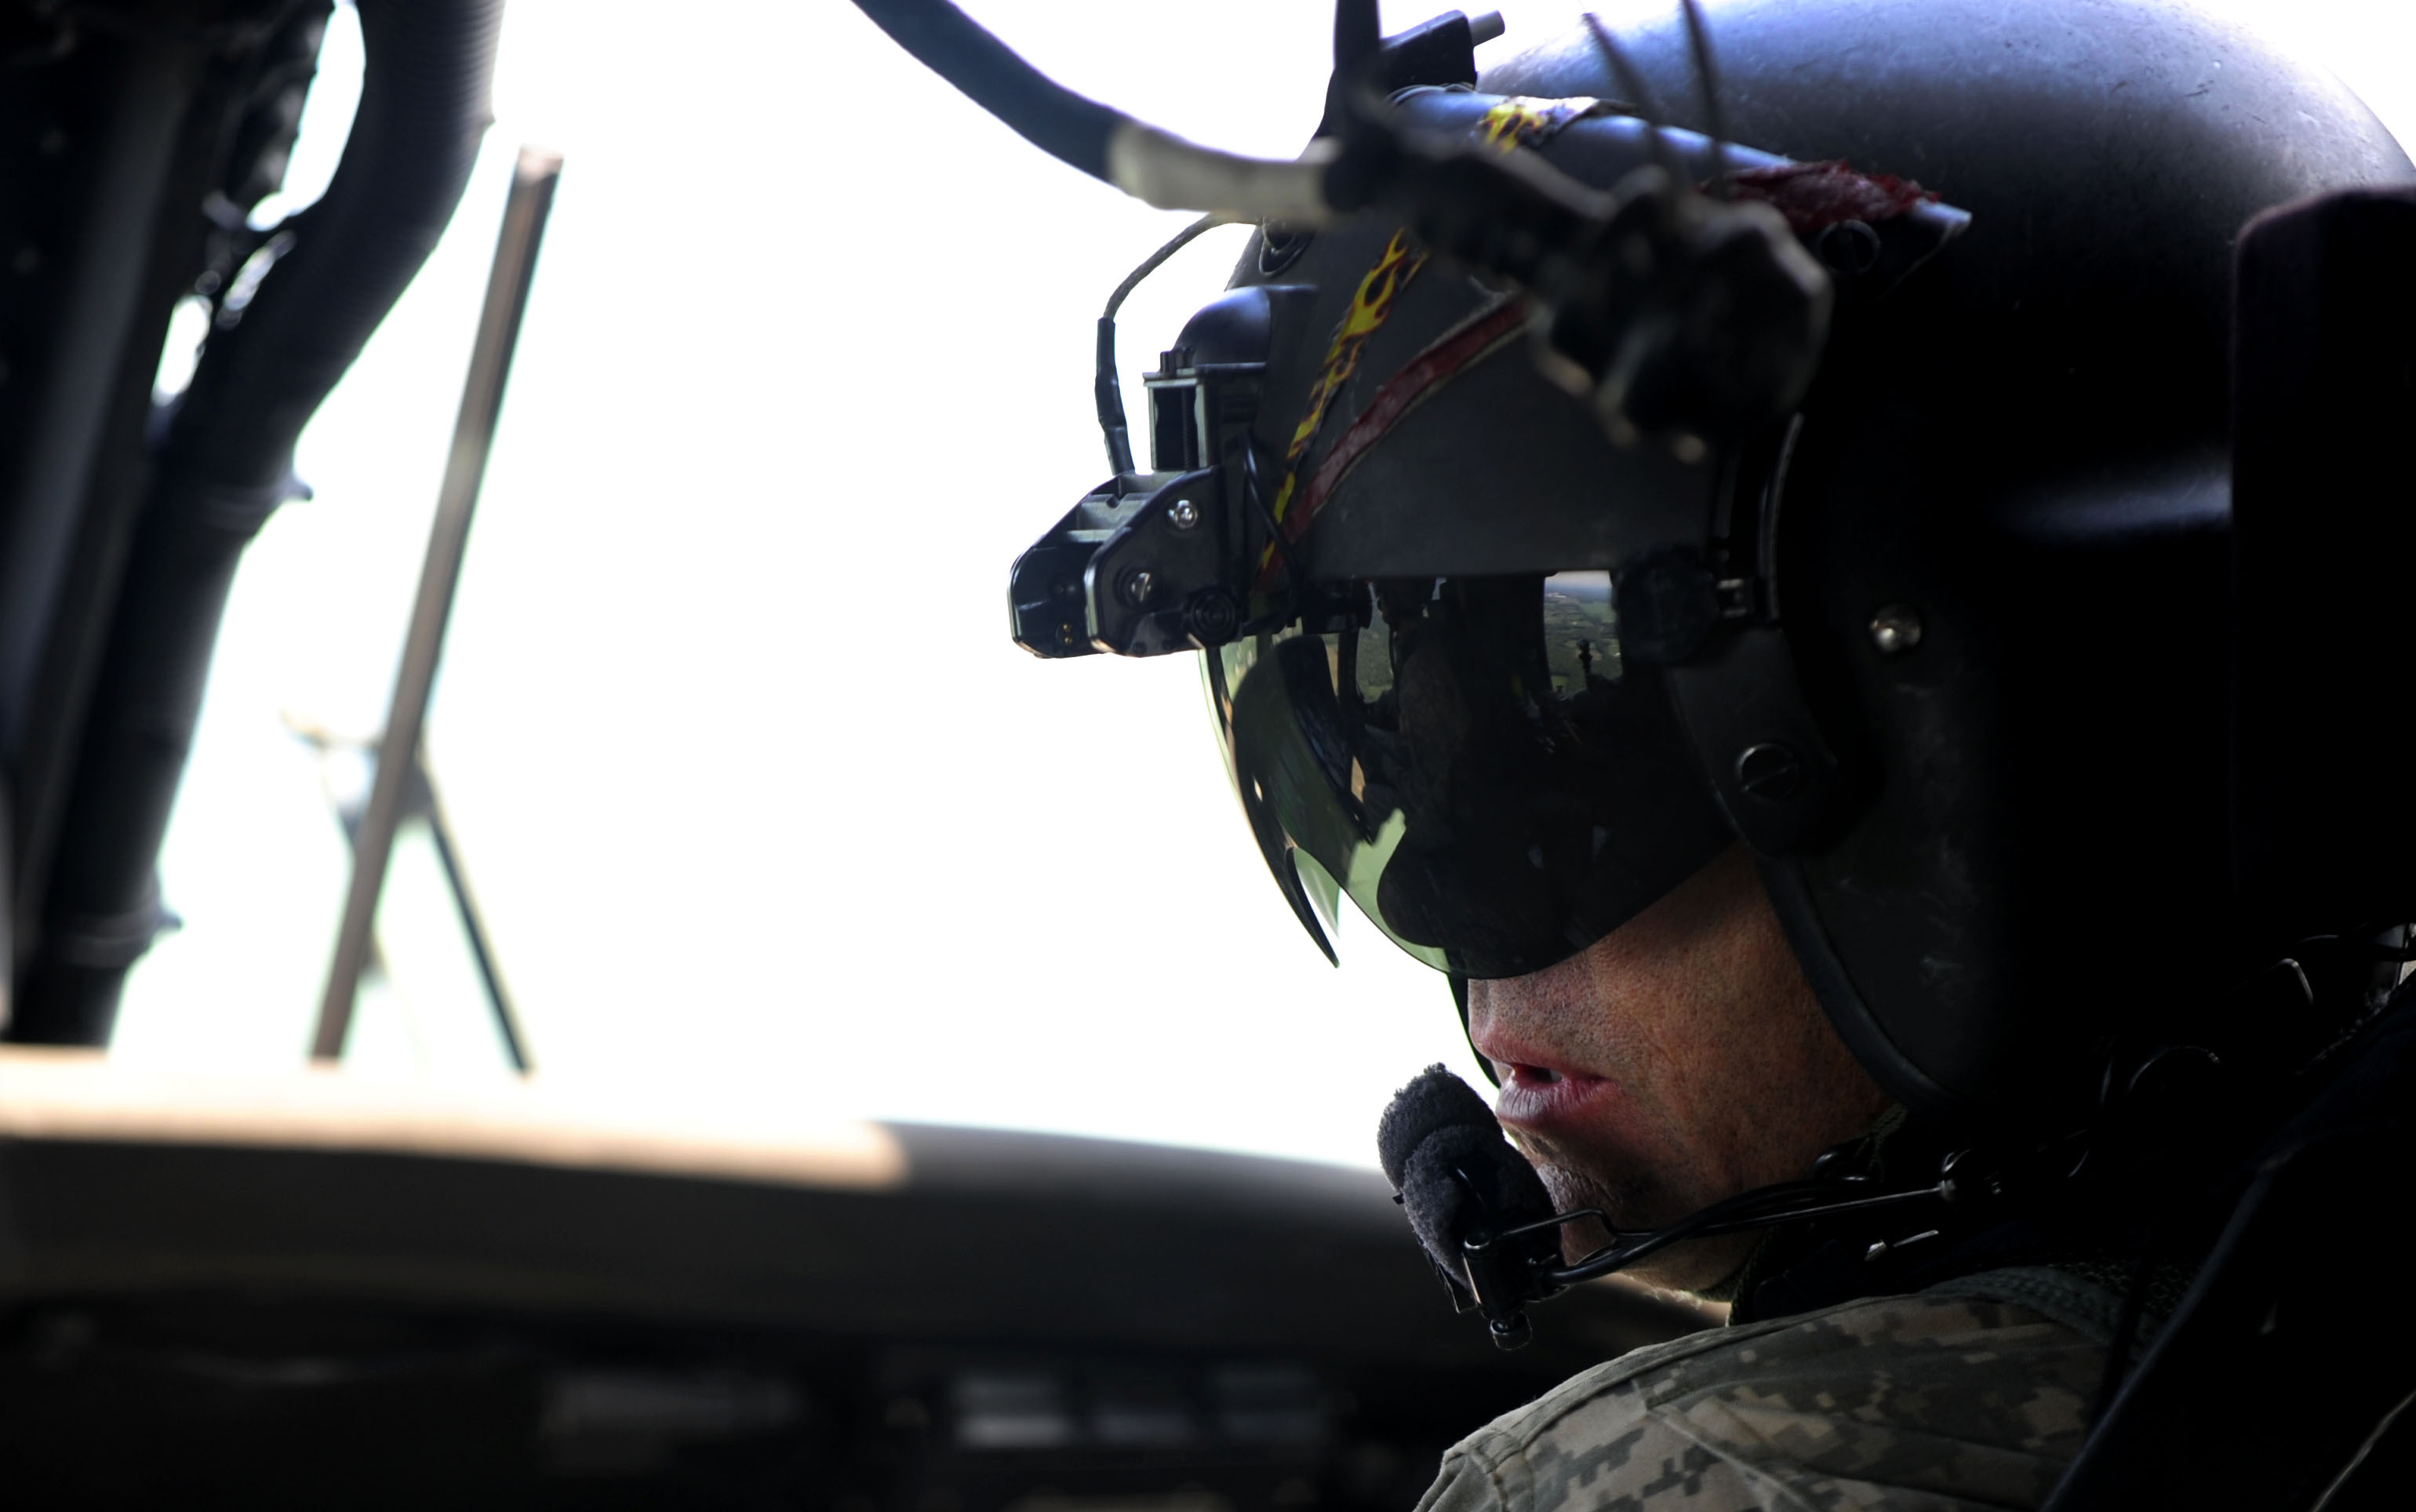 helicopter pilot helmet with File U S  Army Chief Warrant Officer 3 Kevin Palermino  A Uh 60 Black Hawk Helicopter Pilot With The 169th Aviation Battalion  Conducts An Aerial Survey Mission July 31  2012  During Exercise Vibrant Response 13 120731 F Ui476 175 on Adom 9g Oxygen Mask also  likewise Russian Su27 Mig 29 Aircraft Zsh 7 Pilot Flying Flight Helmet Km 34 Oxygen Mask also 1462 Casque Jet Noir Moto Biker Harley Trike Pilote Helicoptere besides Flight Helmets.